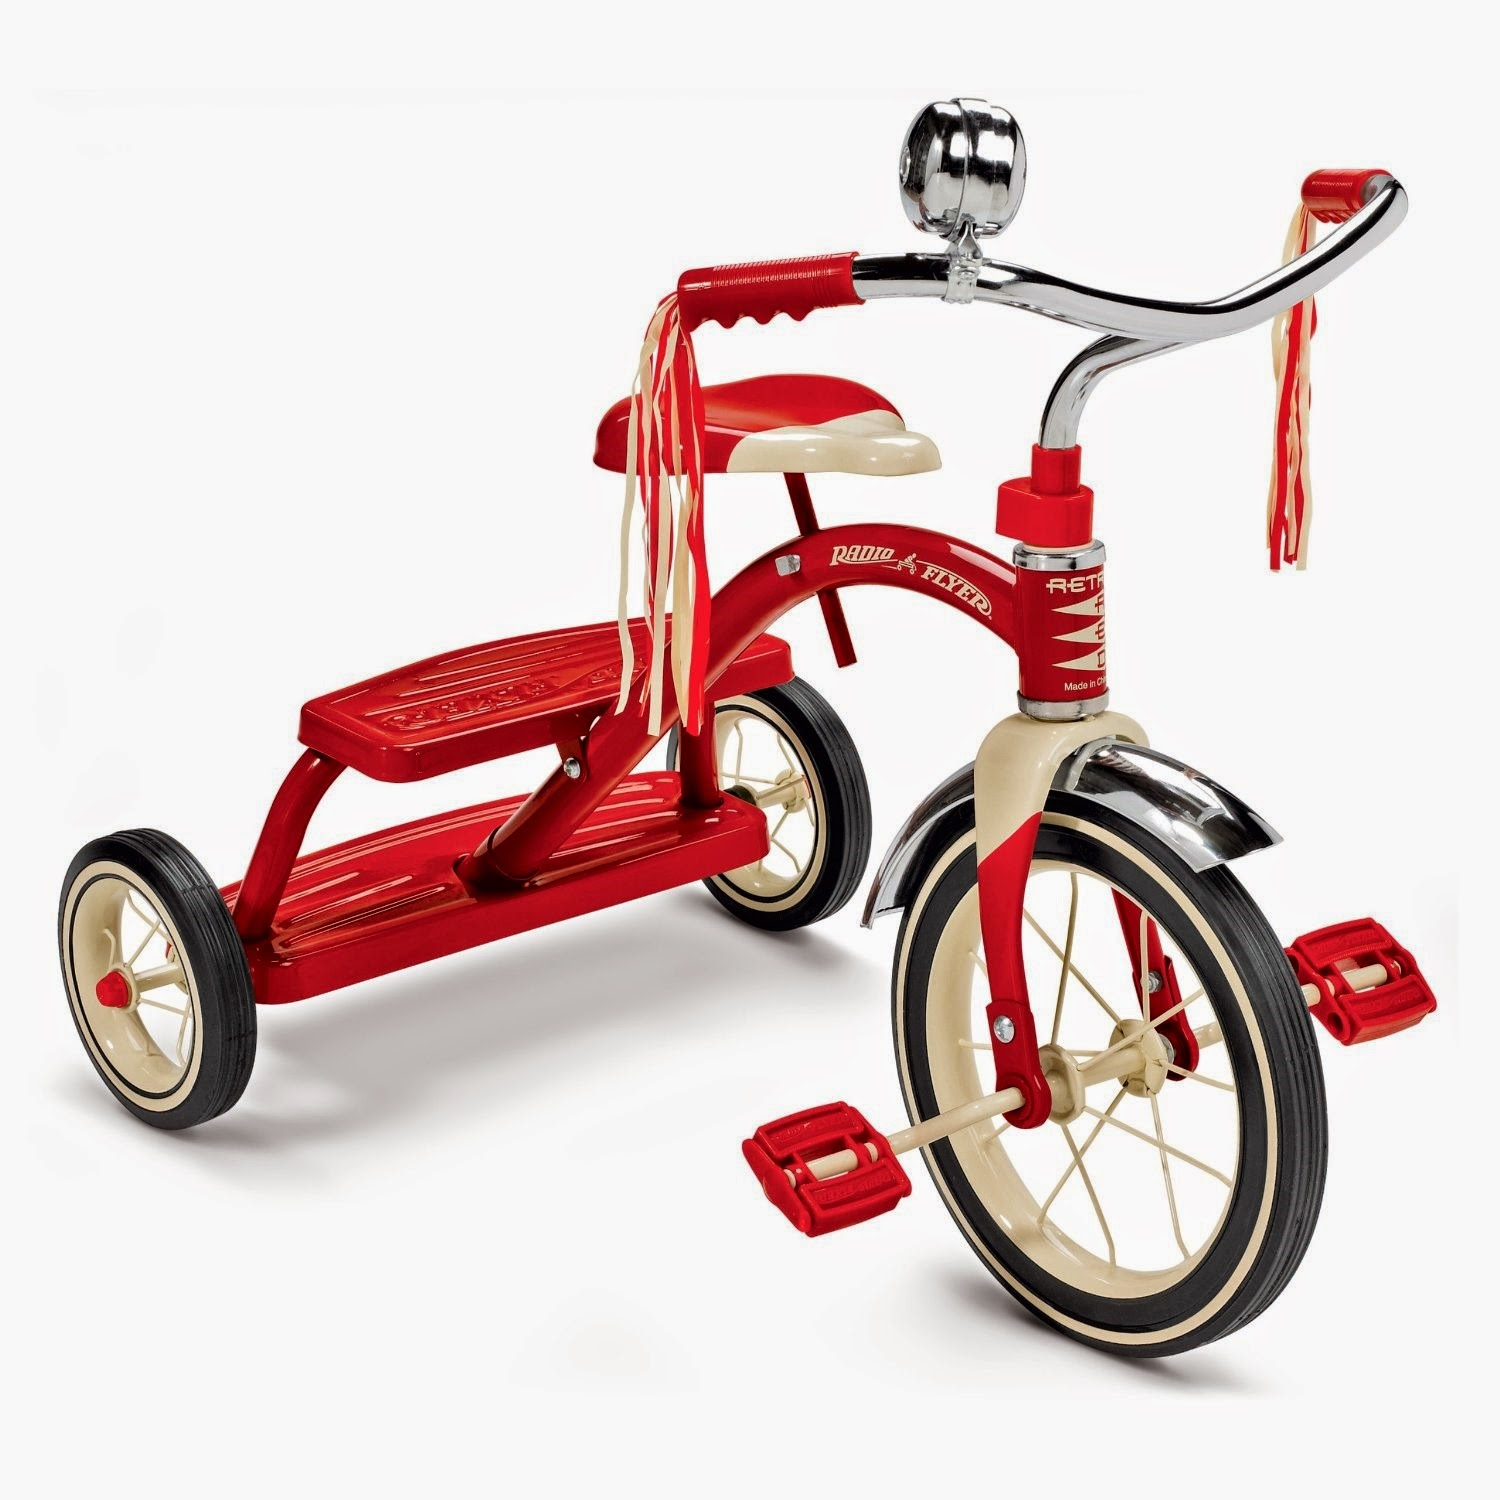 http://www.amazon.com/Radio-Flyer-Classic-Dual-Tricycle/dp/B00004TXM7/ref=sr_1_2?s=toys-and-games&ie=UTF8&qid=1429802978&sr=1-2&keywords=tricycle